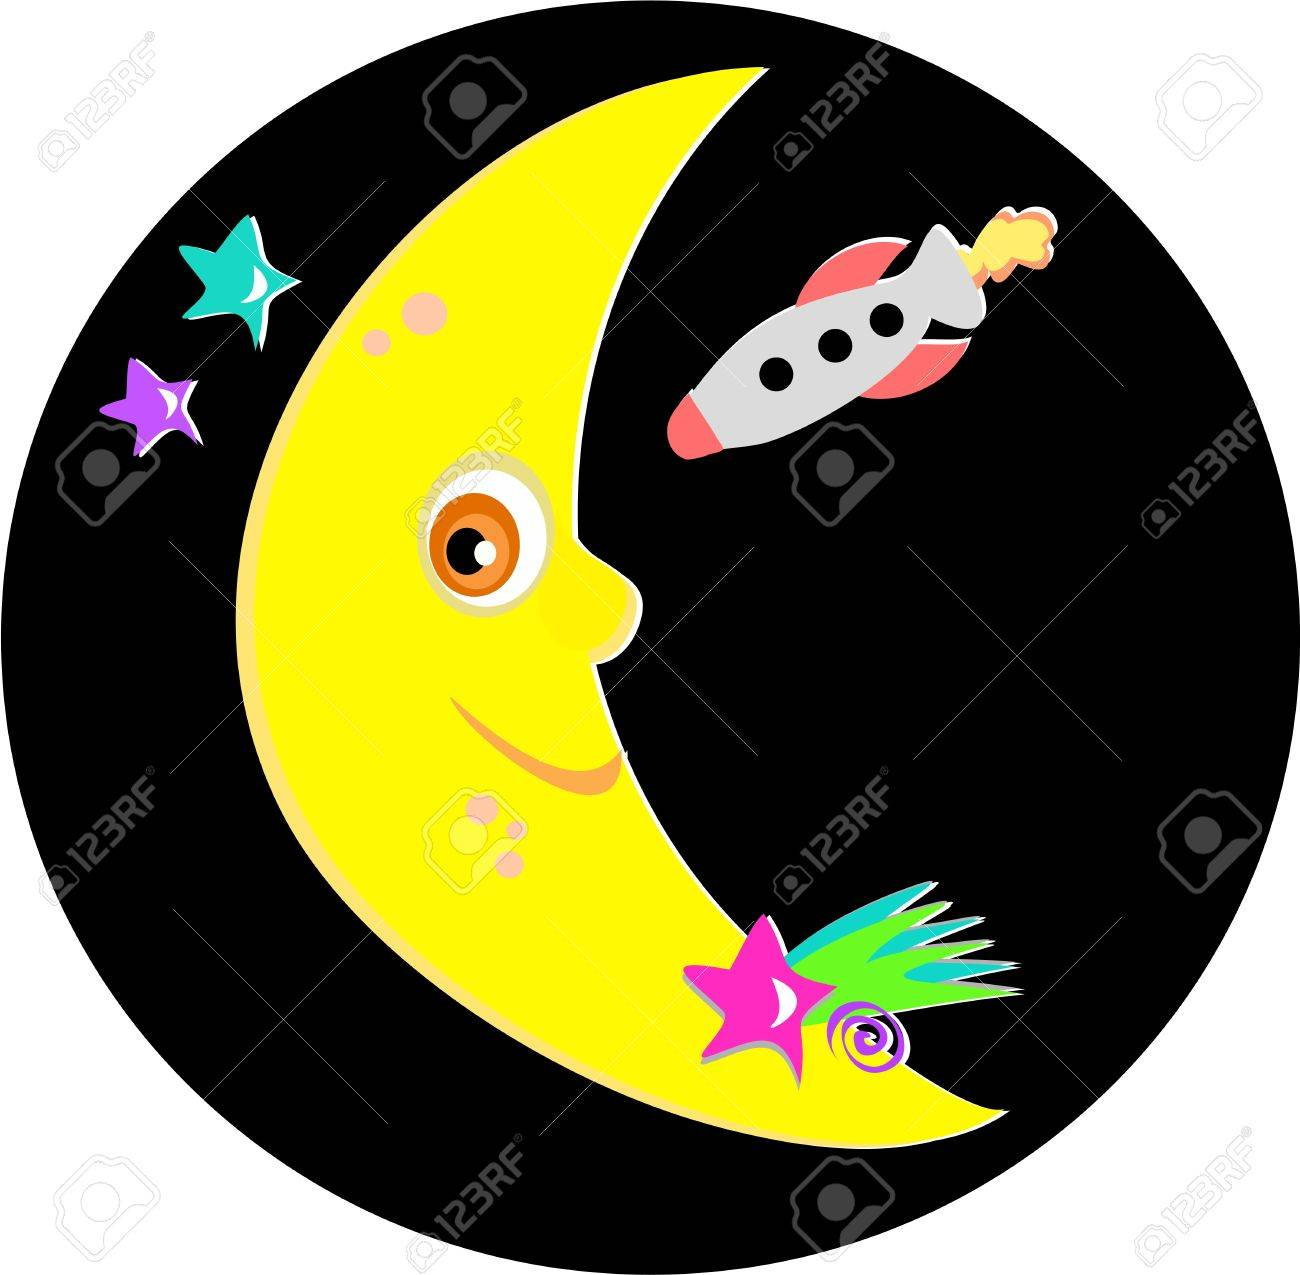 Smiling Moon with Rocket and Stars Stock Vector - 8306307